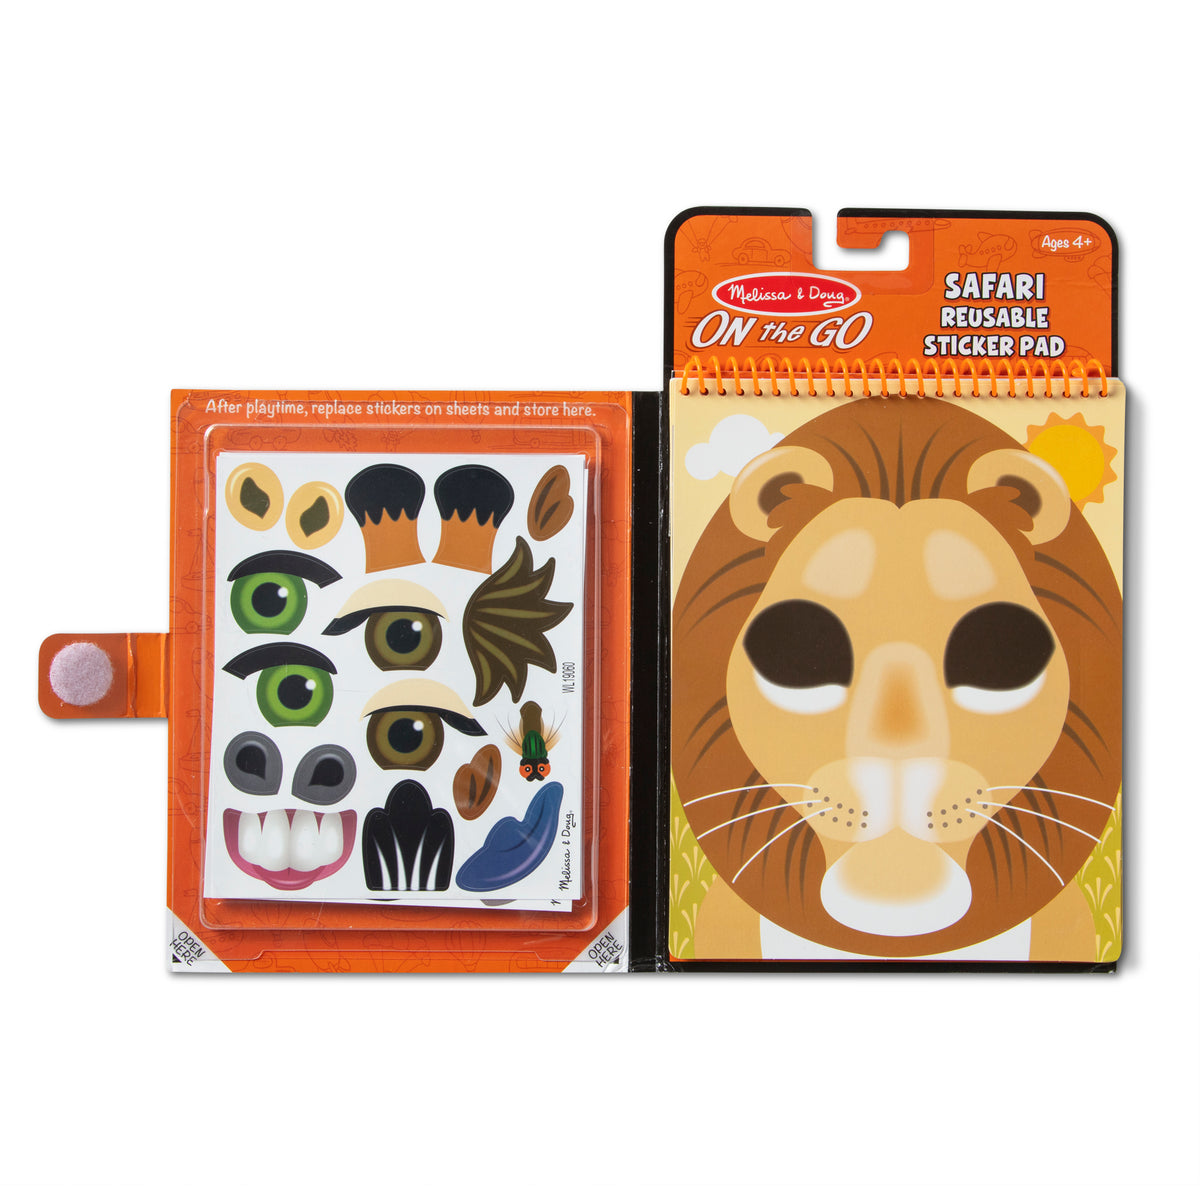 Melissa & Doug Make-a-Face Reusable Sticker Pads